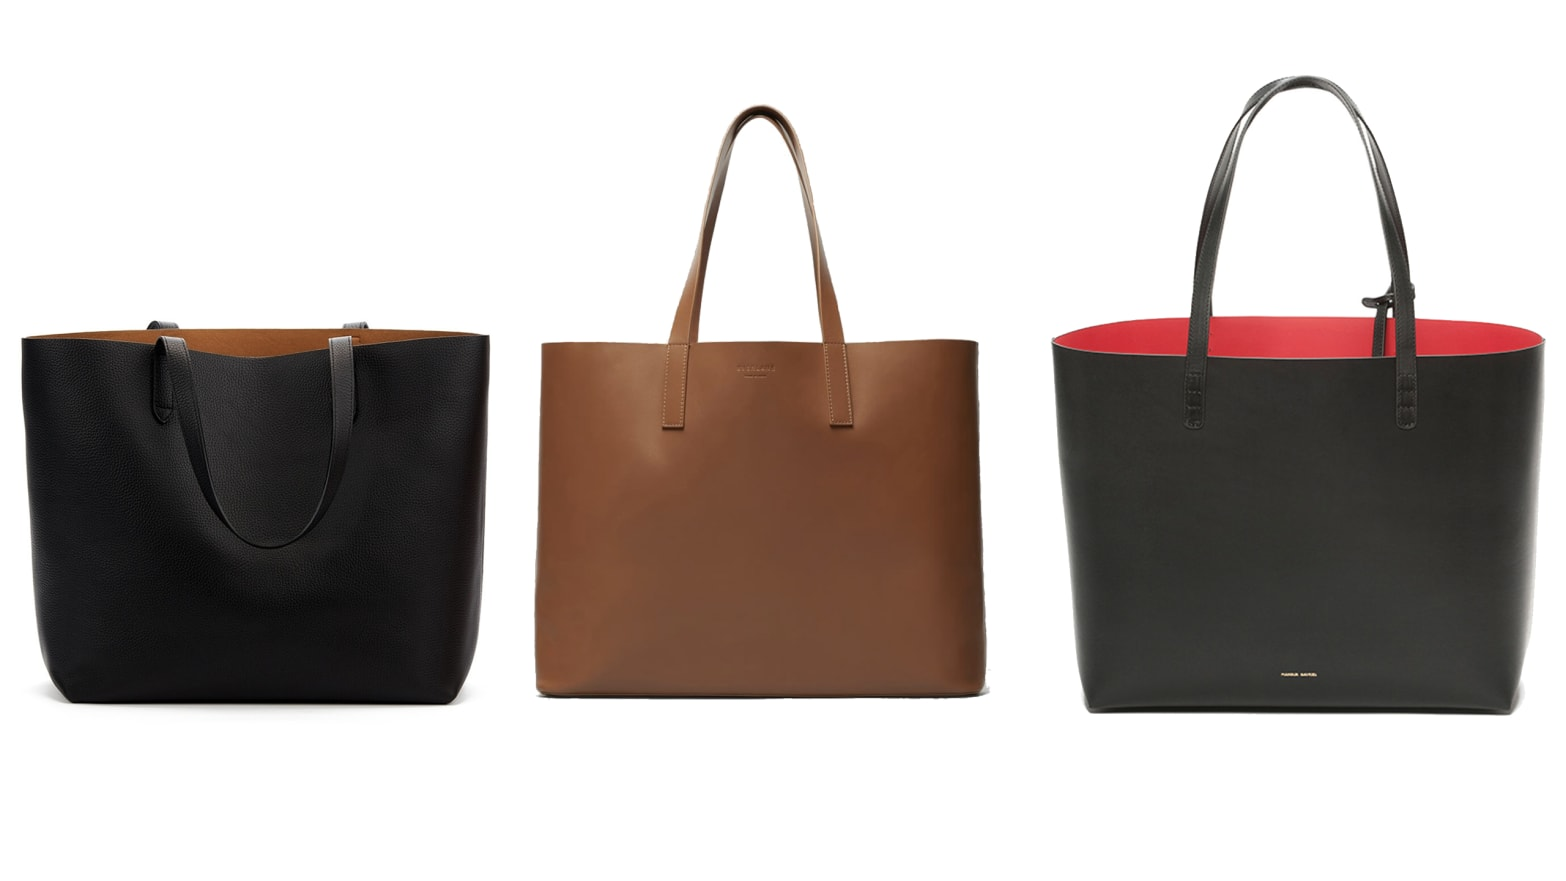 The Best Leather Tote Bags For Work